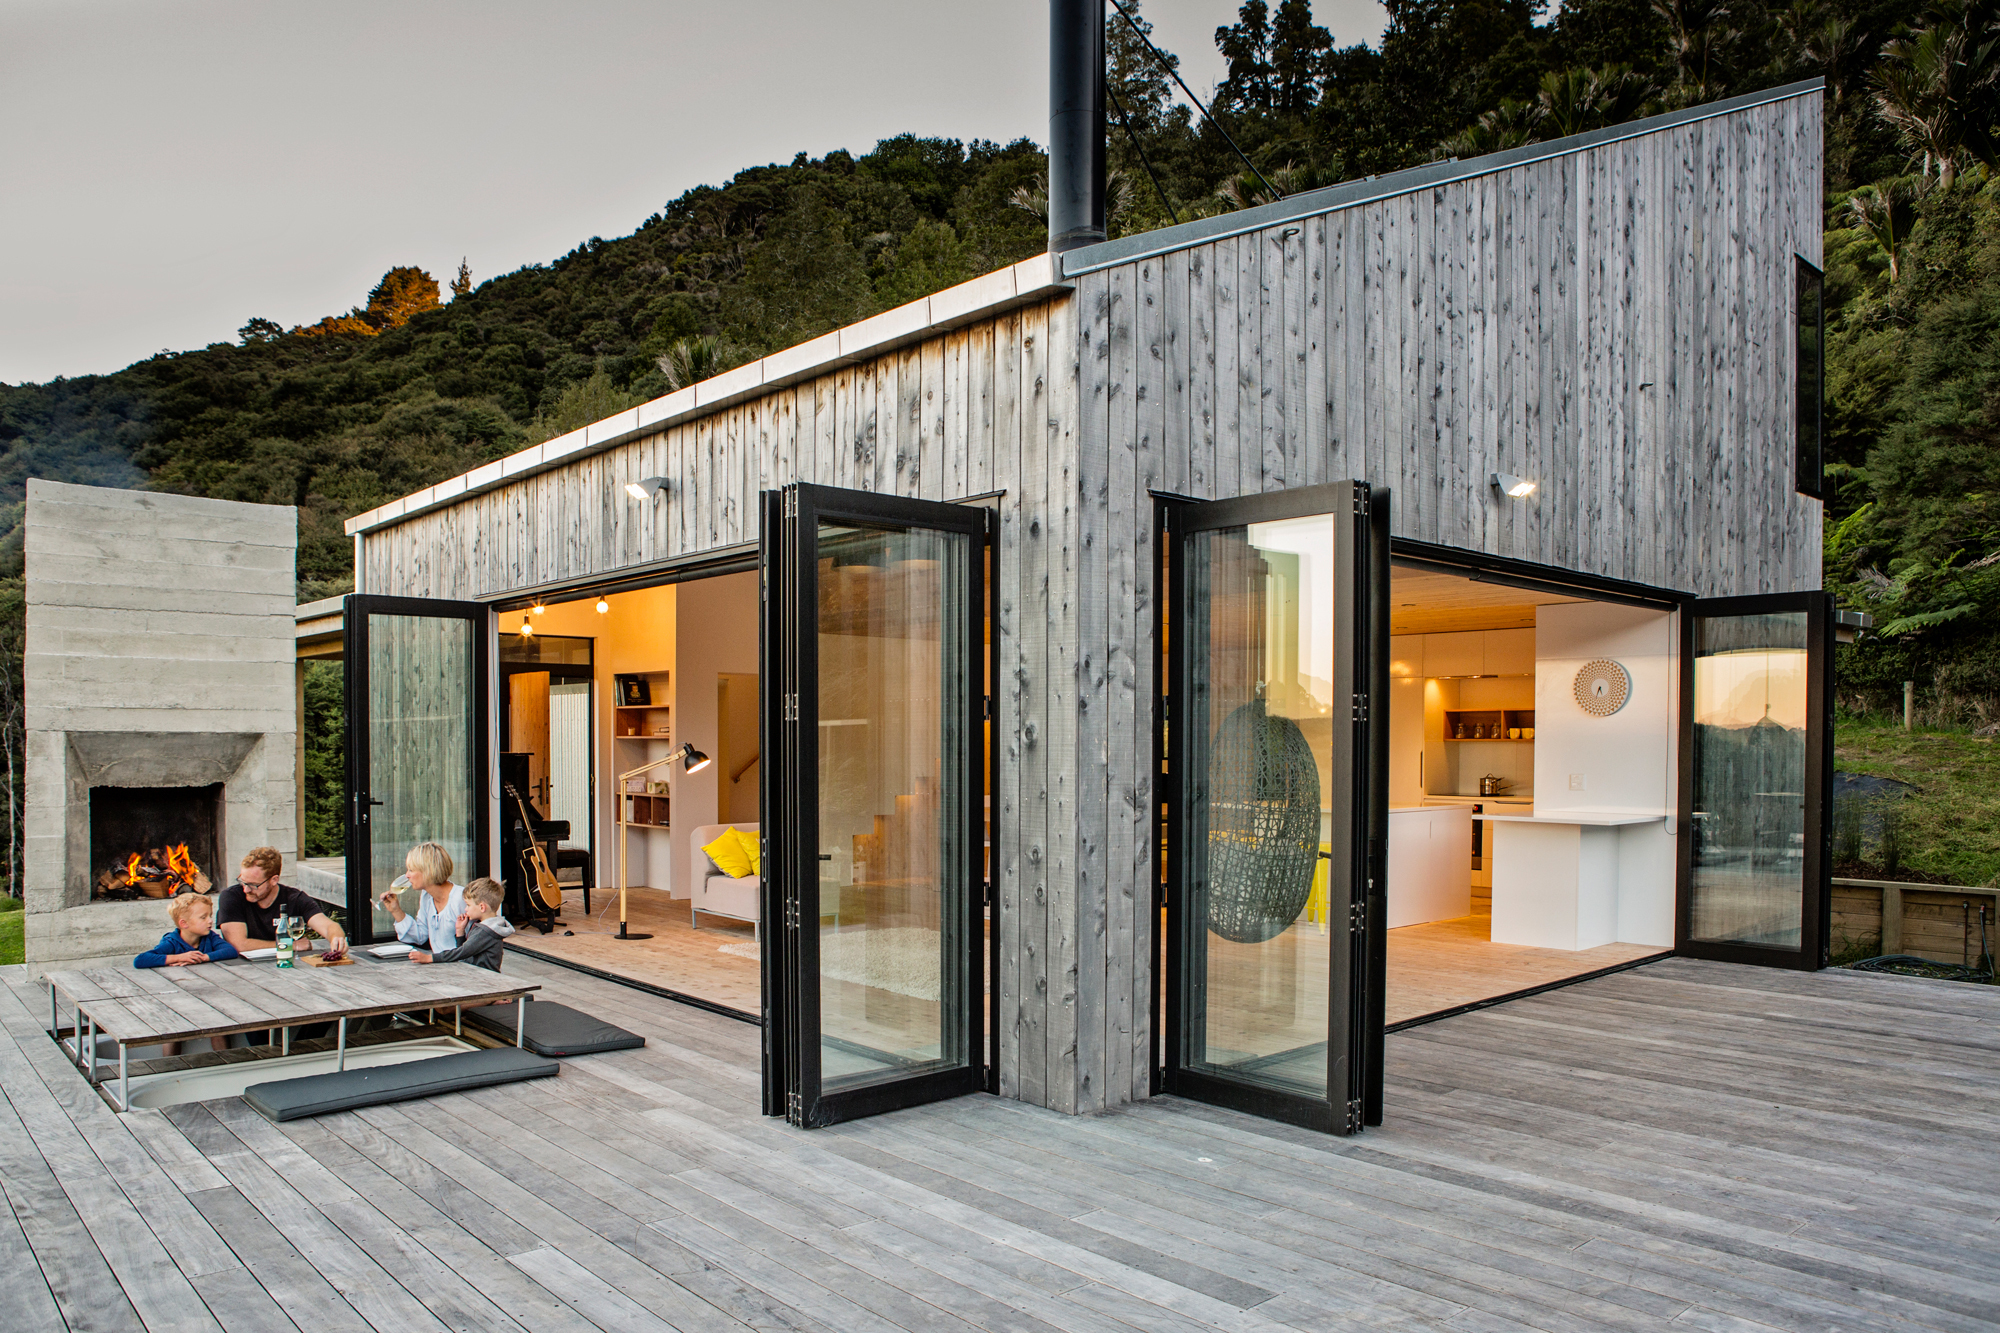 Best Kitchen Gallery: Back Country House Ltd Architectural Design Studio Archdaily of Architectural Design  on rachelxblog.com